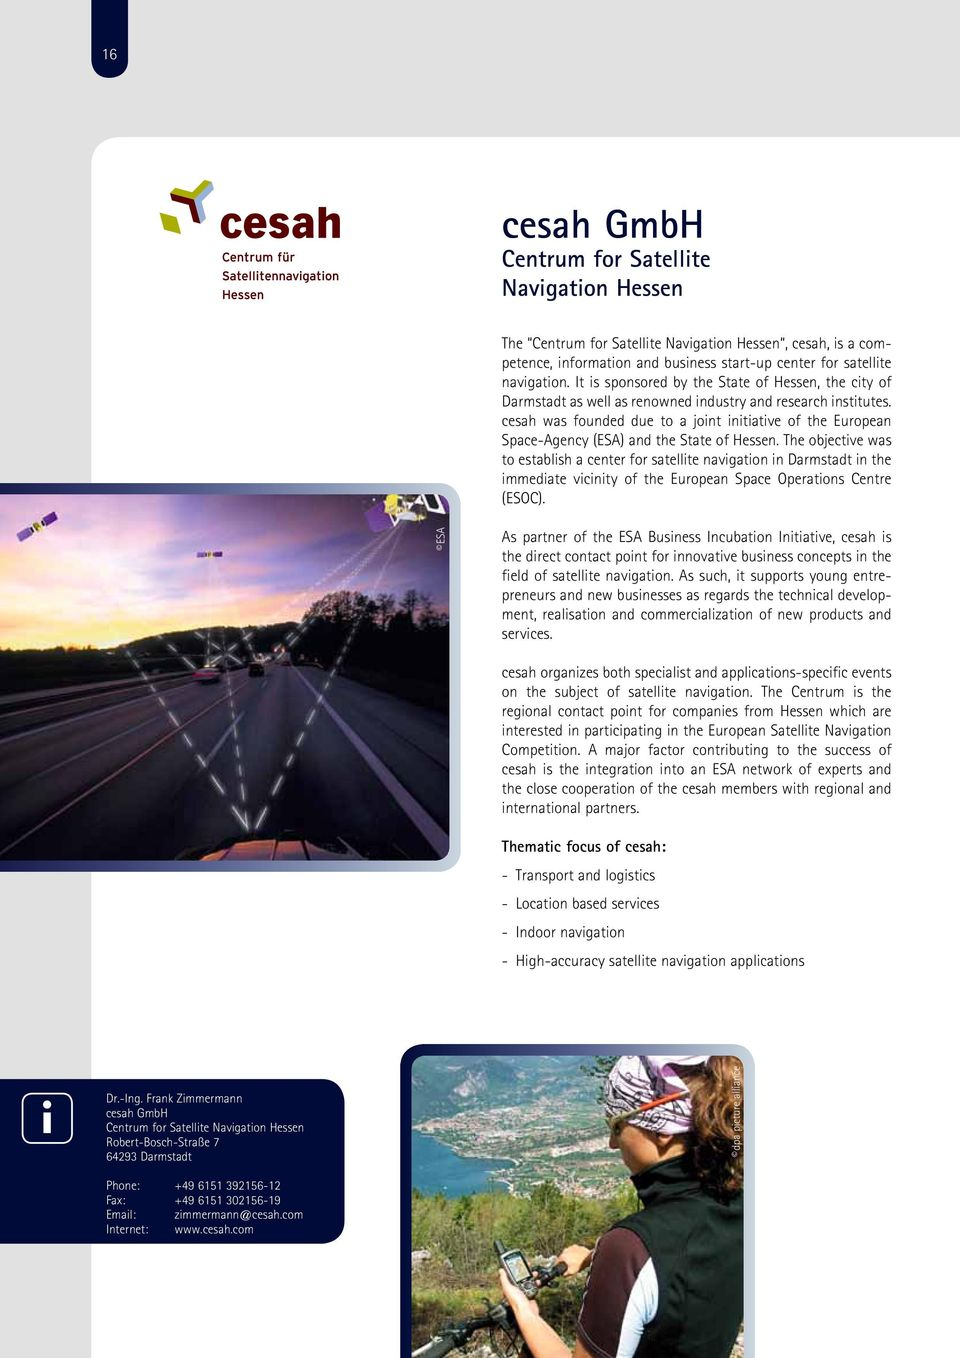 cesah was founded due to a jont ntatve of the European Space-Agency (ESA) and the State of Hessen.